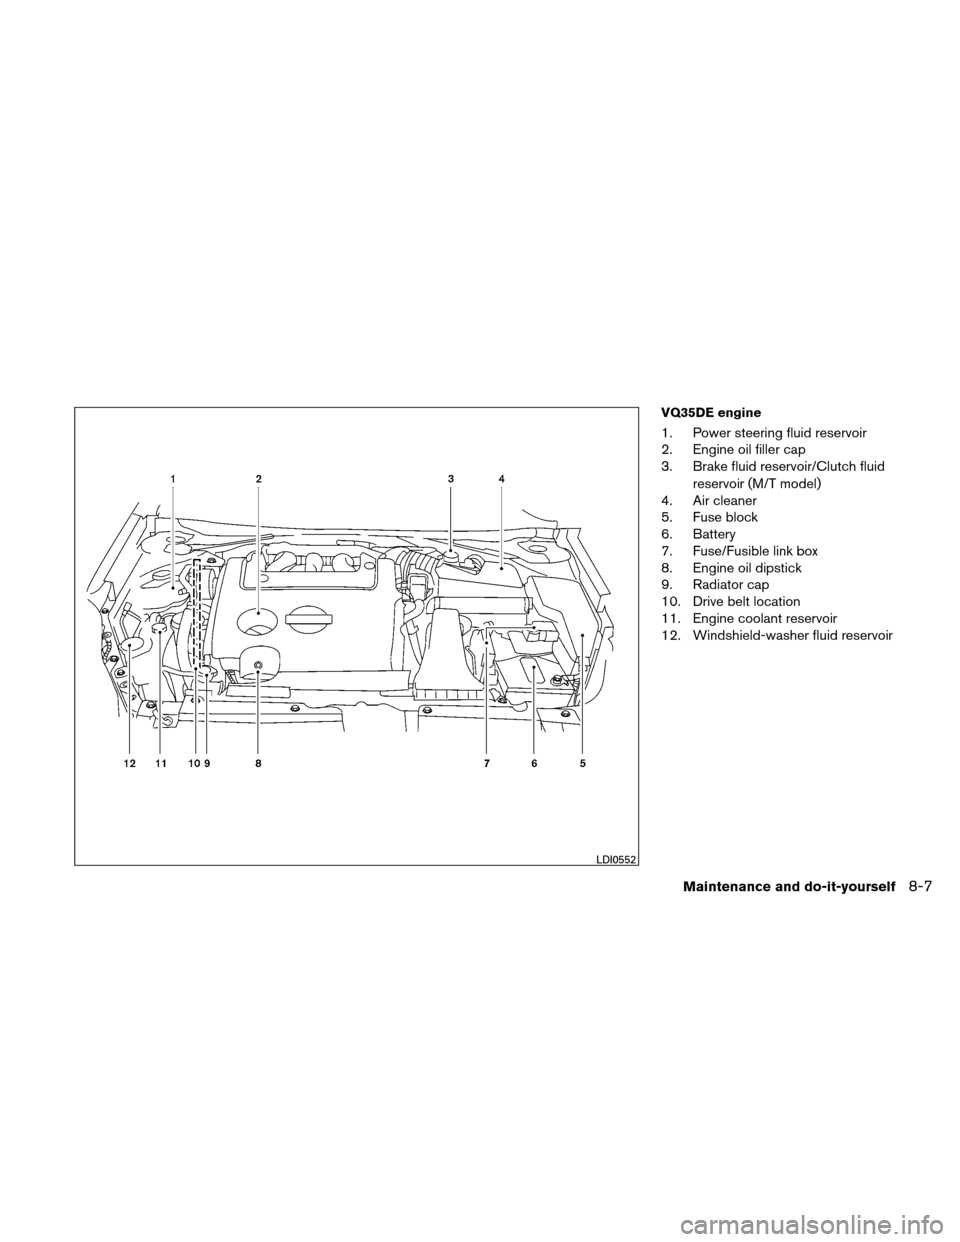 NISSAN ALTIMA COUPE 2011 D32 / 4.G Owners Manual, Page 366